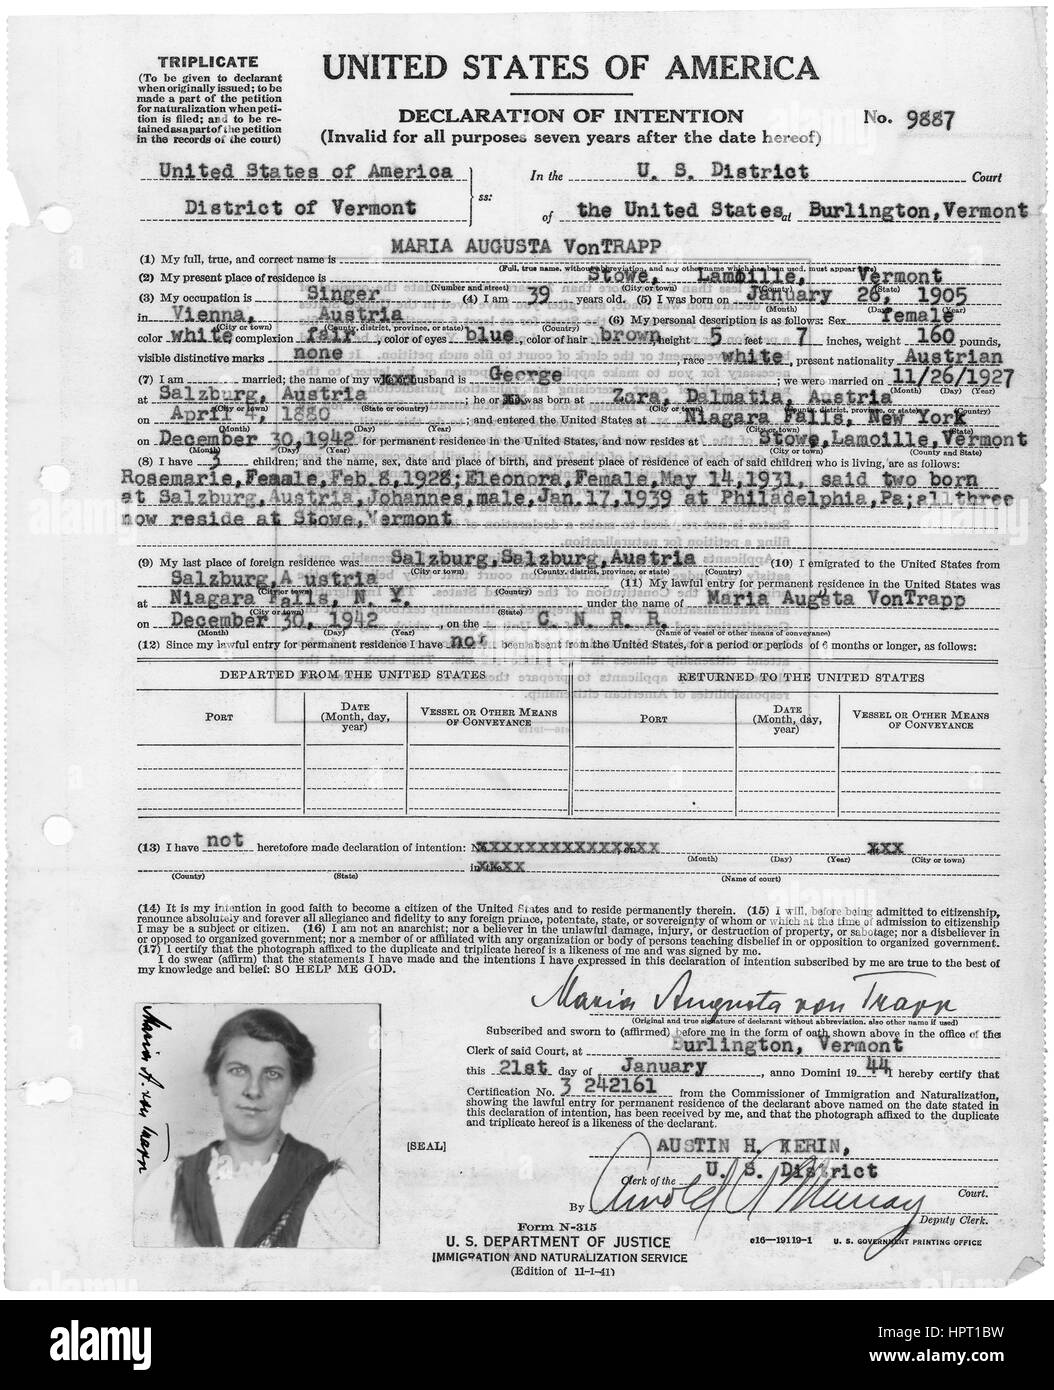 The Declaration of Intention filed by Maria von Trapp of the Trapp Family Singers, Vermont, January 21, 1944. Image Stock Photo